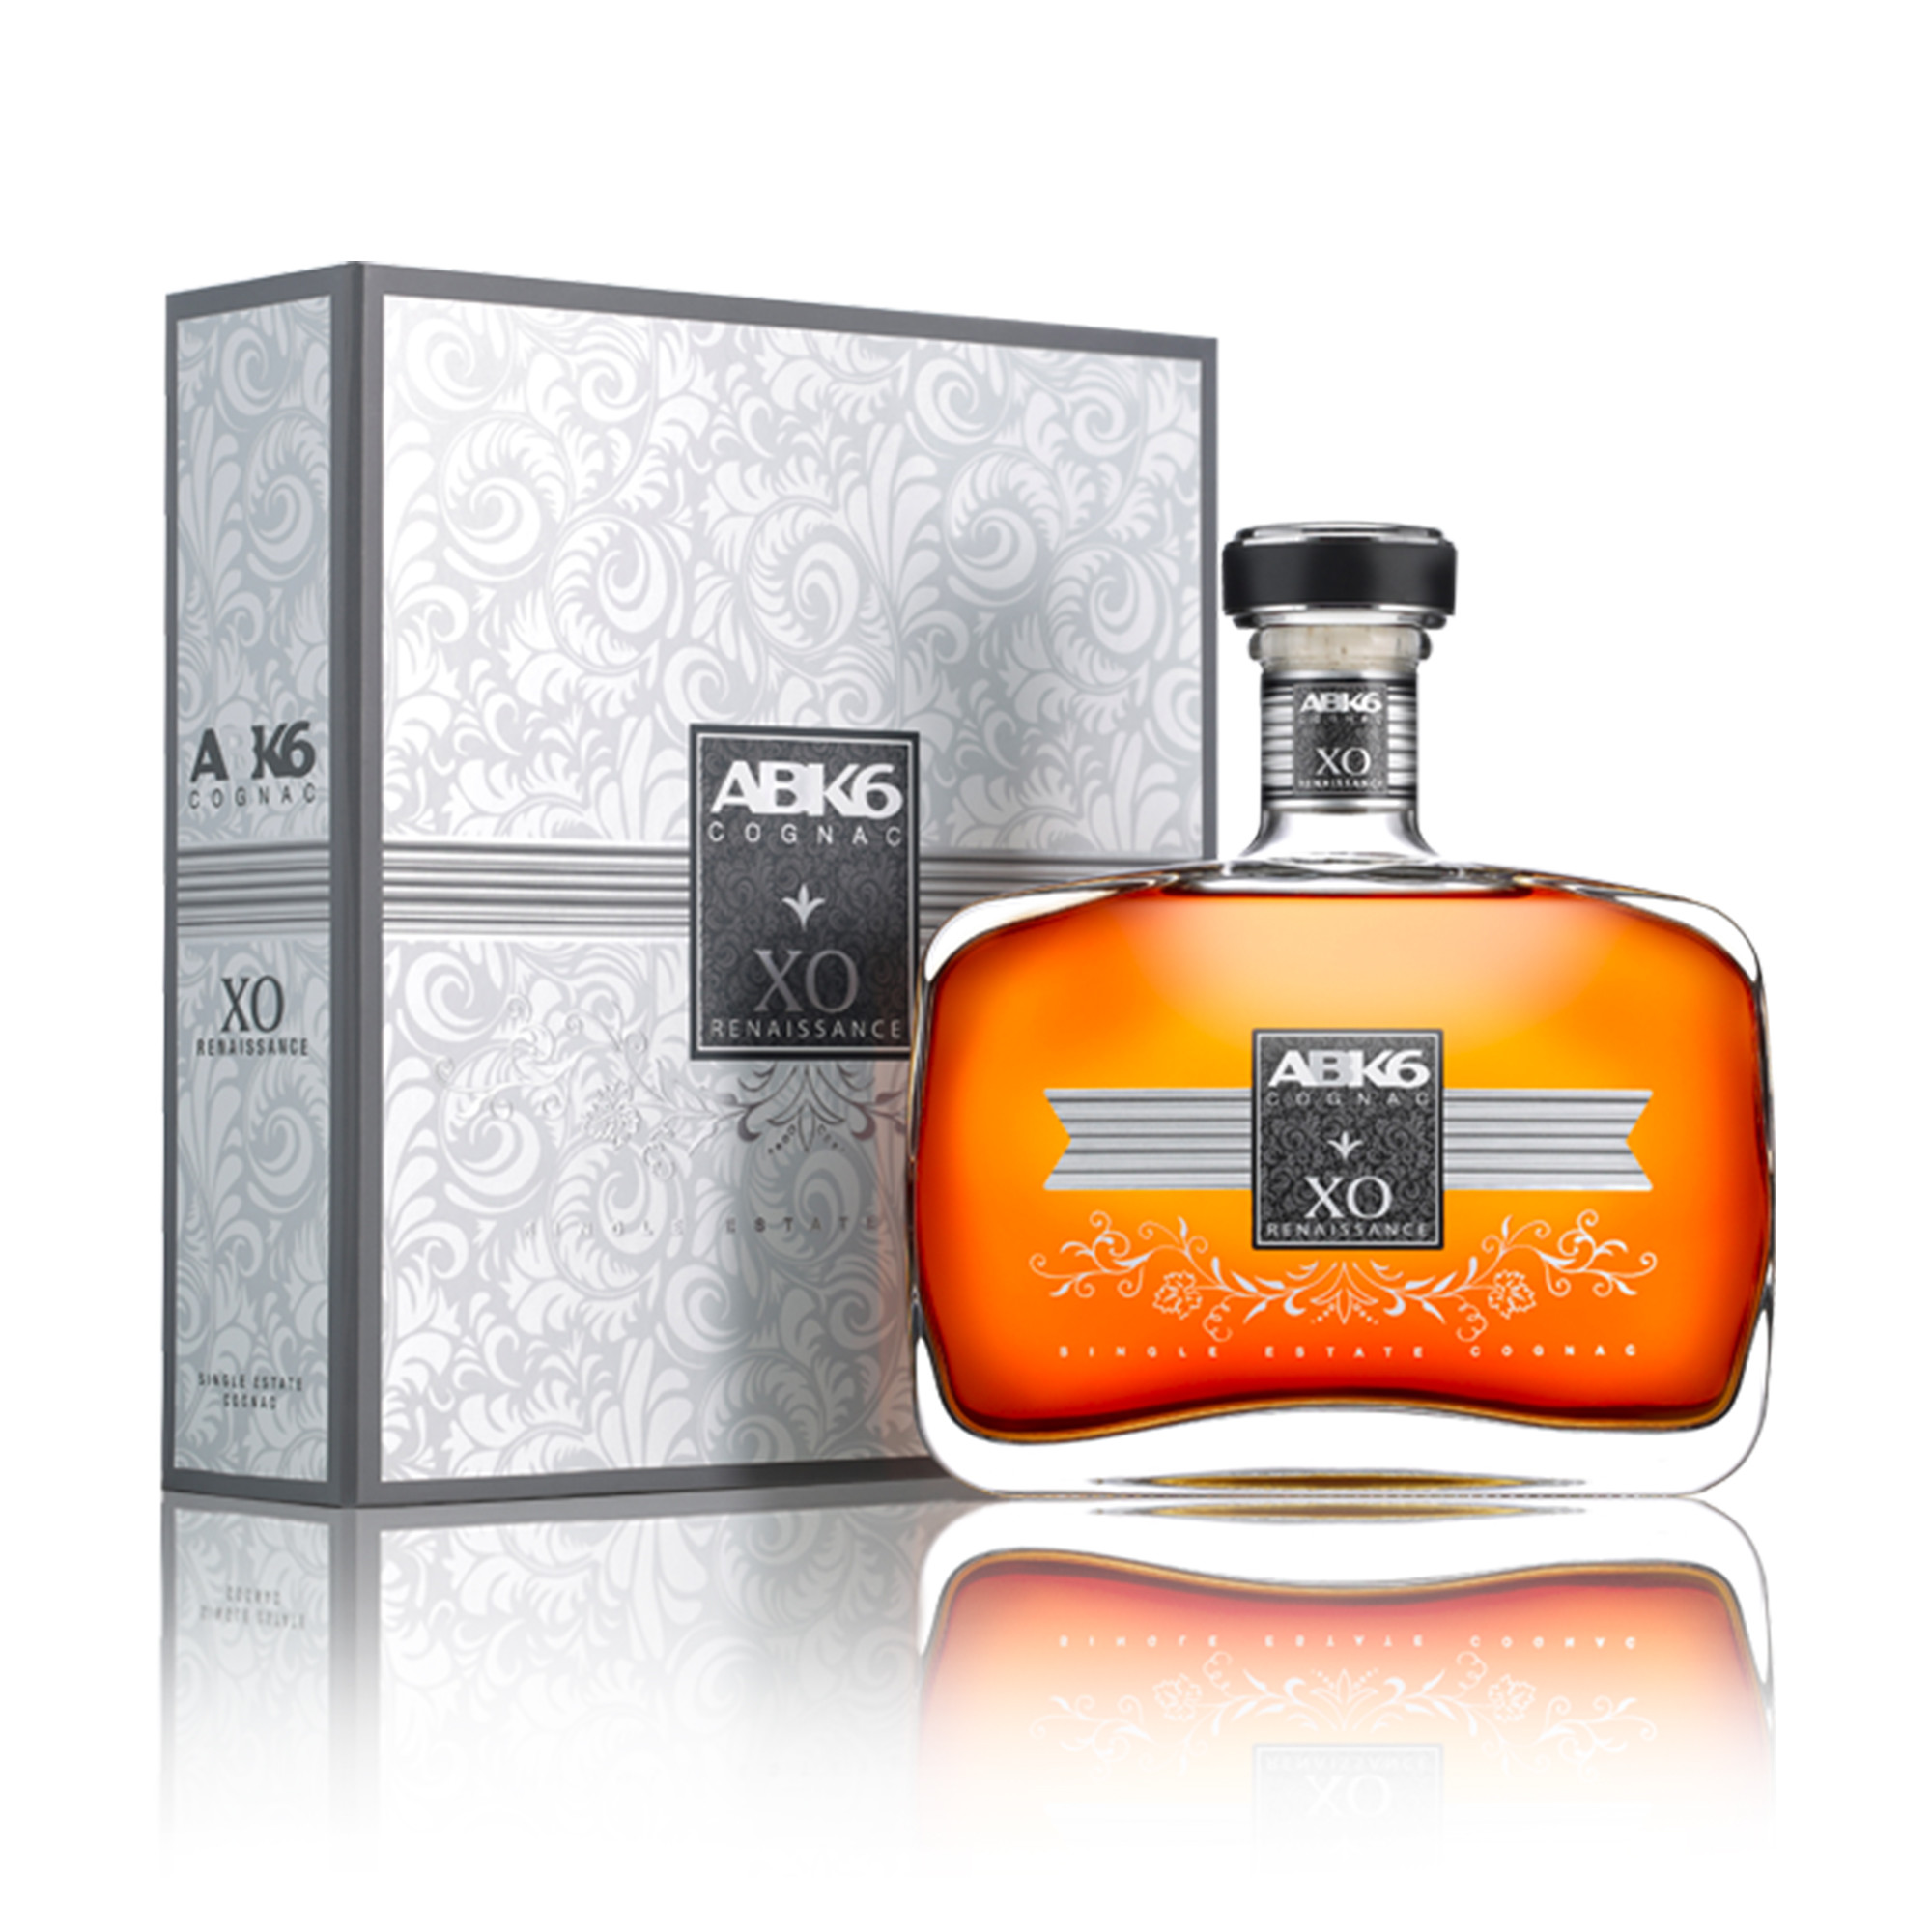 Image of X.O Renaissance, Cognac - 750 ml